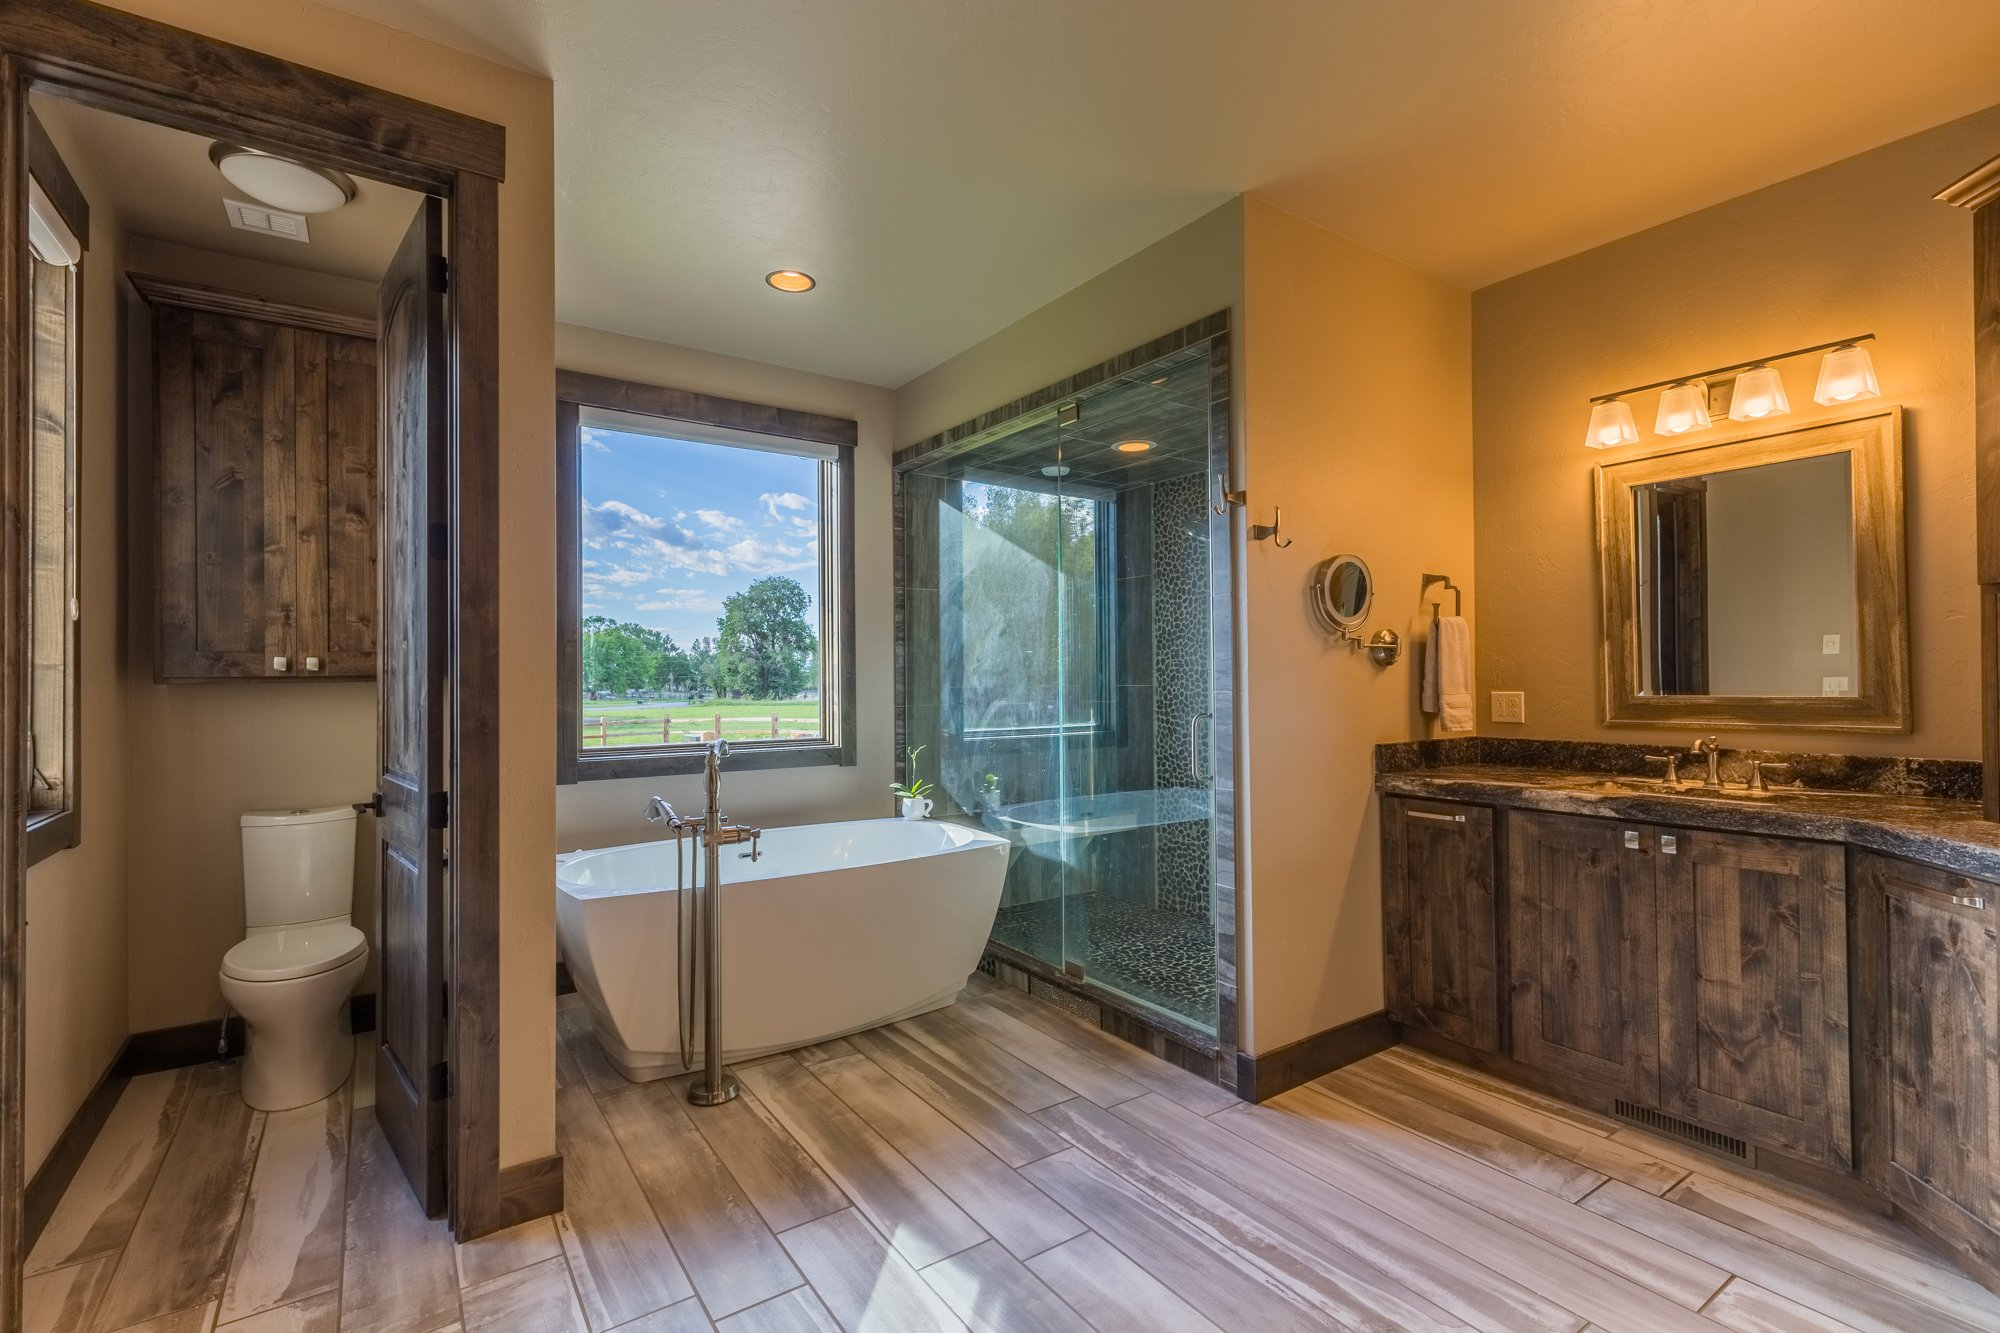 Bathroom with Jetted Tub - 15067 6140 Ln Montrose, CO 81403 - Atha Team Luxury Real Estate